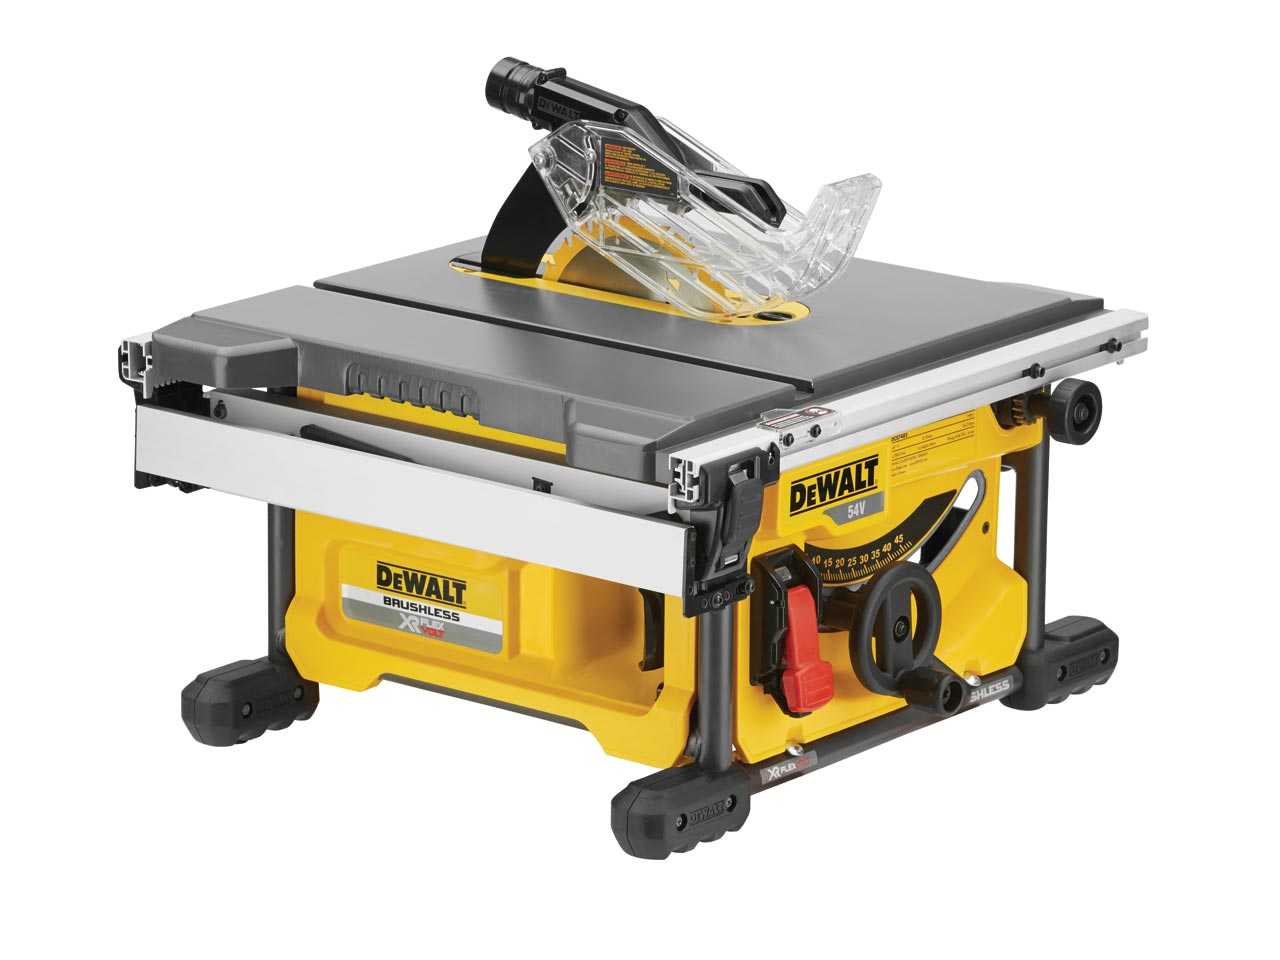 Dewalt Dcs7485n Xj 54v Xr Flexvolt 210mm Table Saw Bare Unit